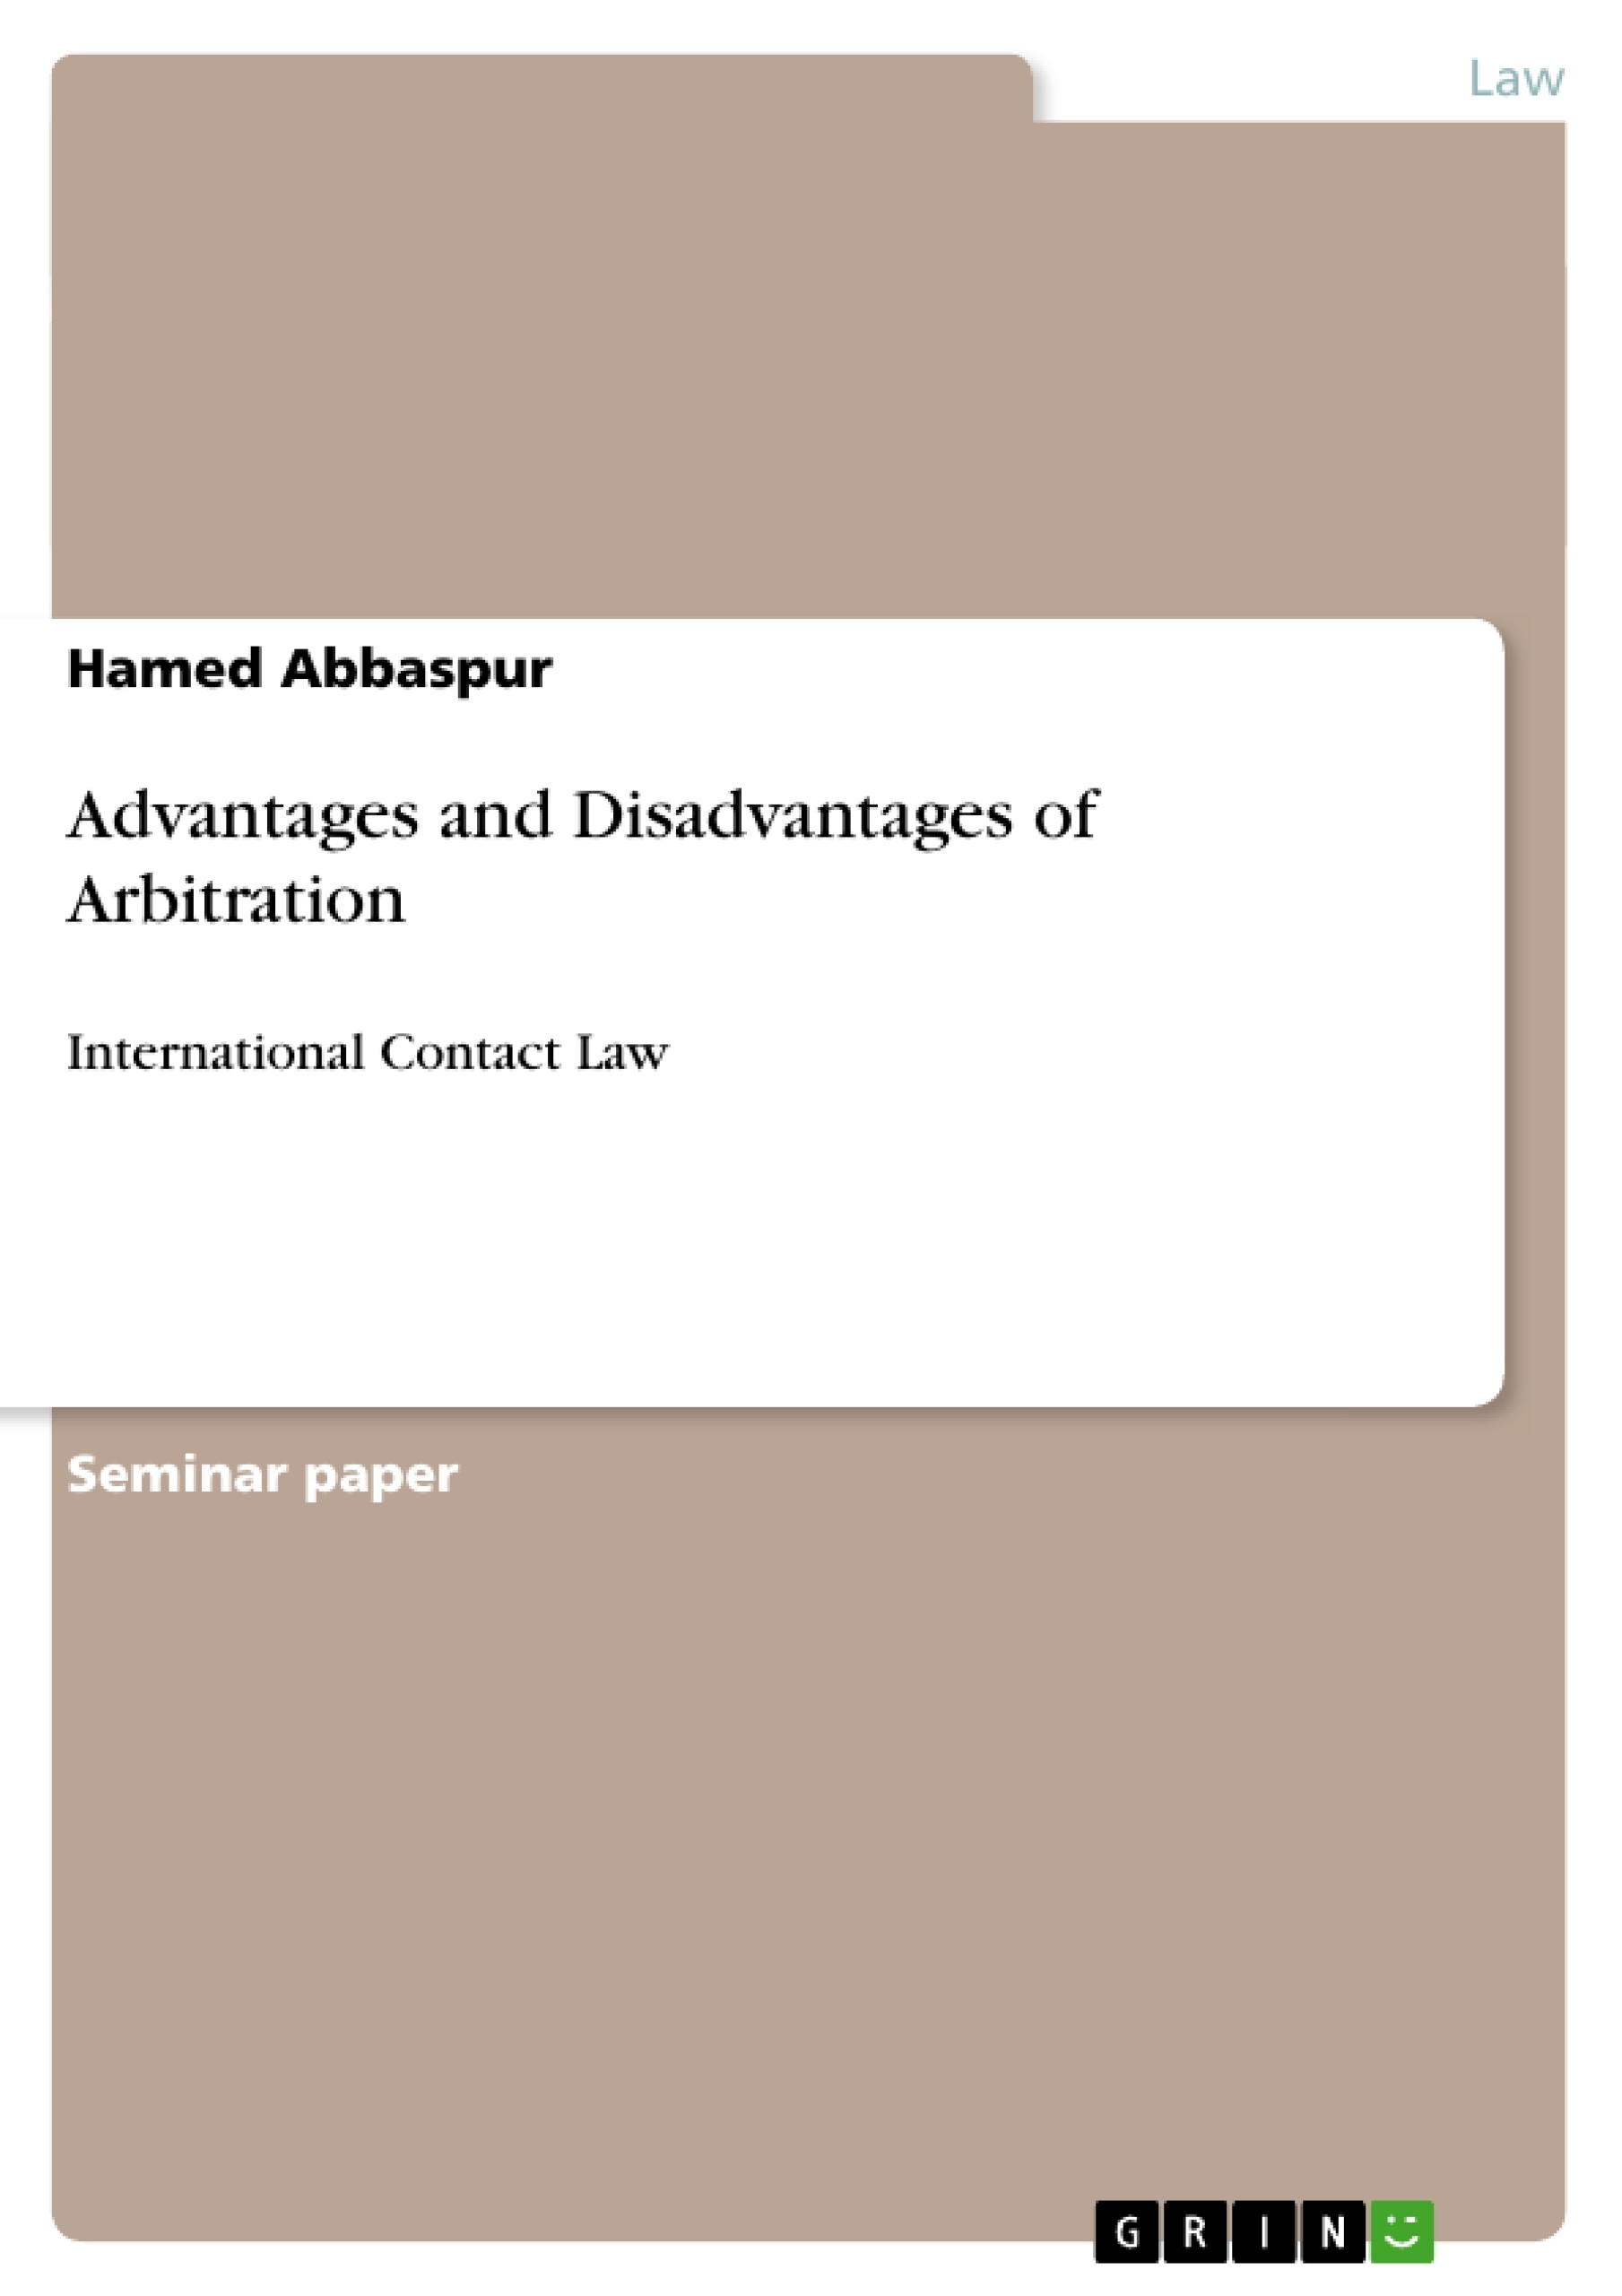 Title: Advantages and Disadvantages of Arbitration